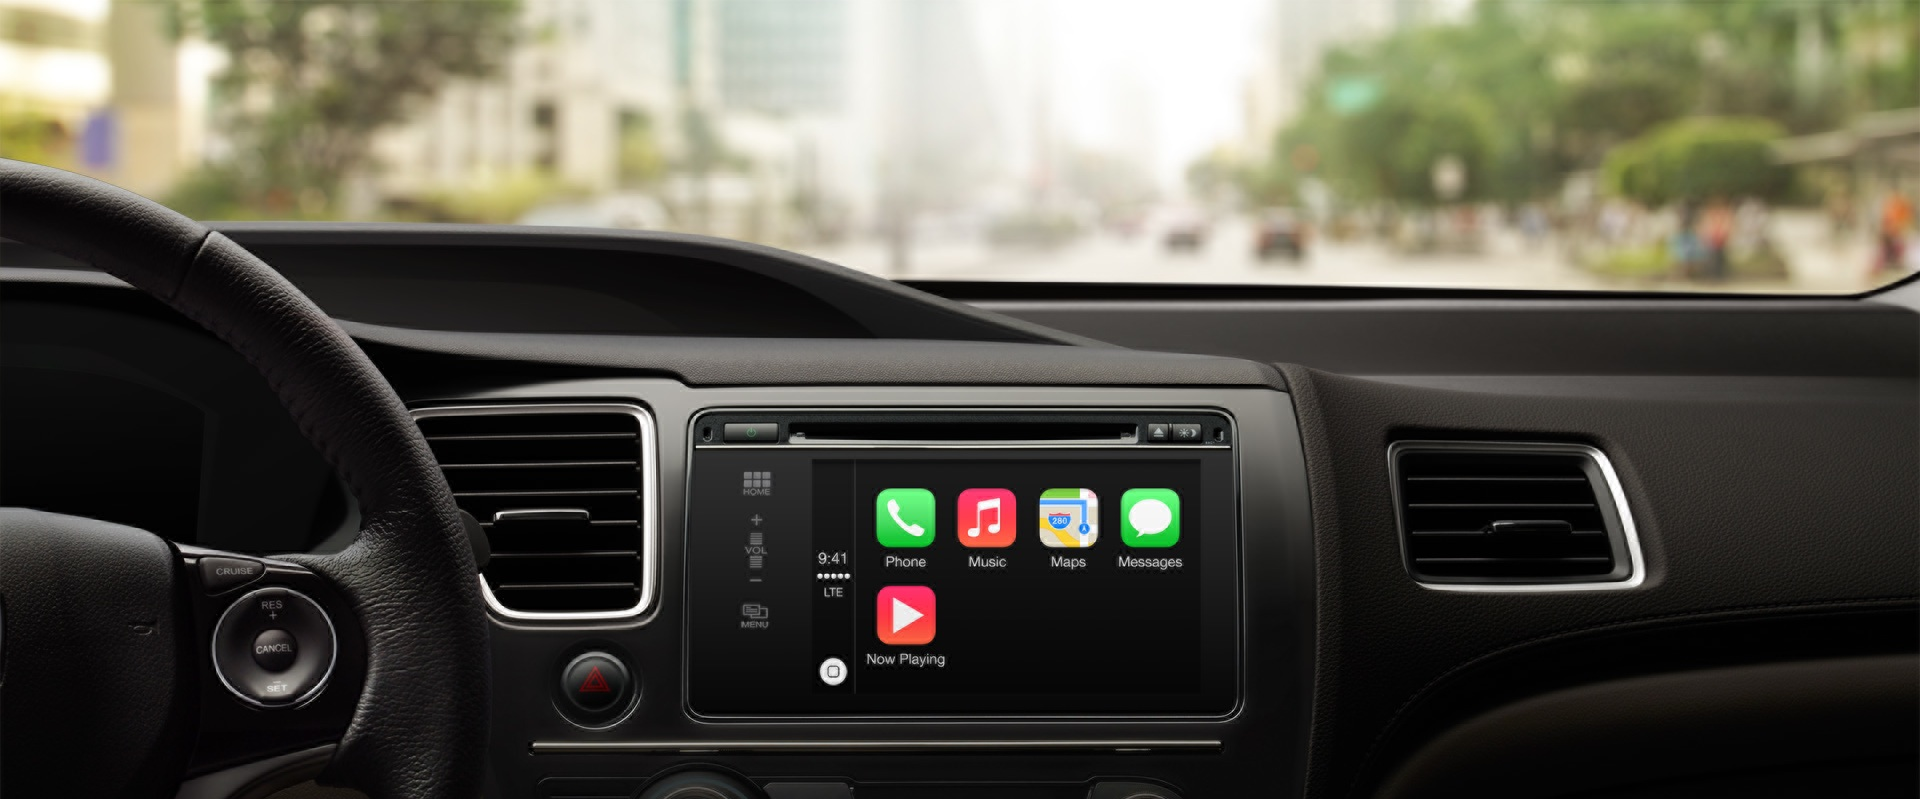 Apple CarPlay (Honda, Homescreen 001)